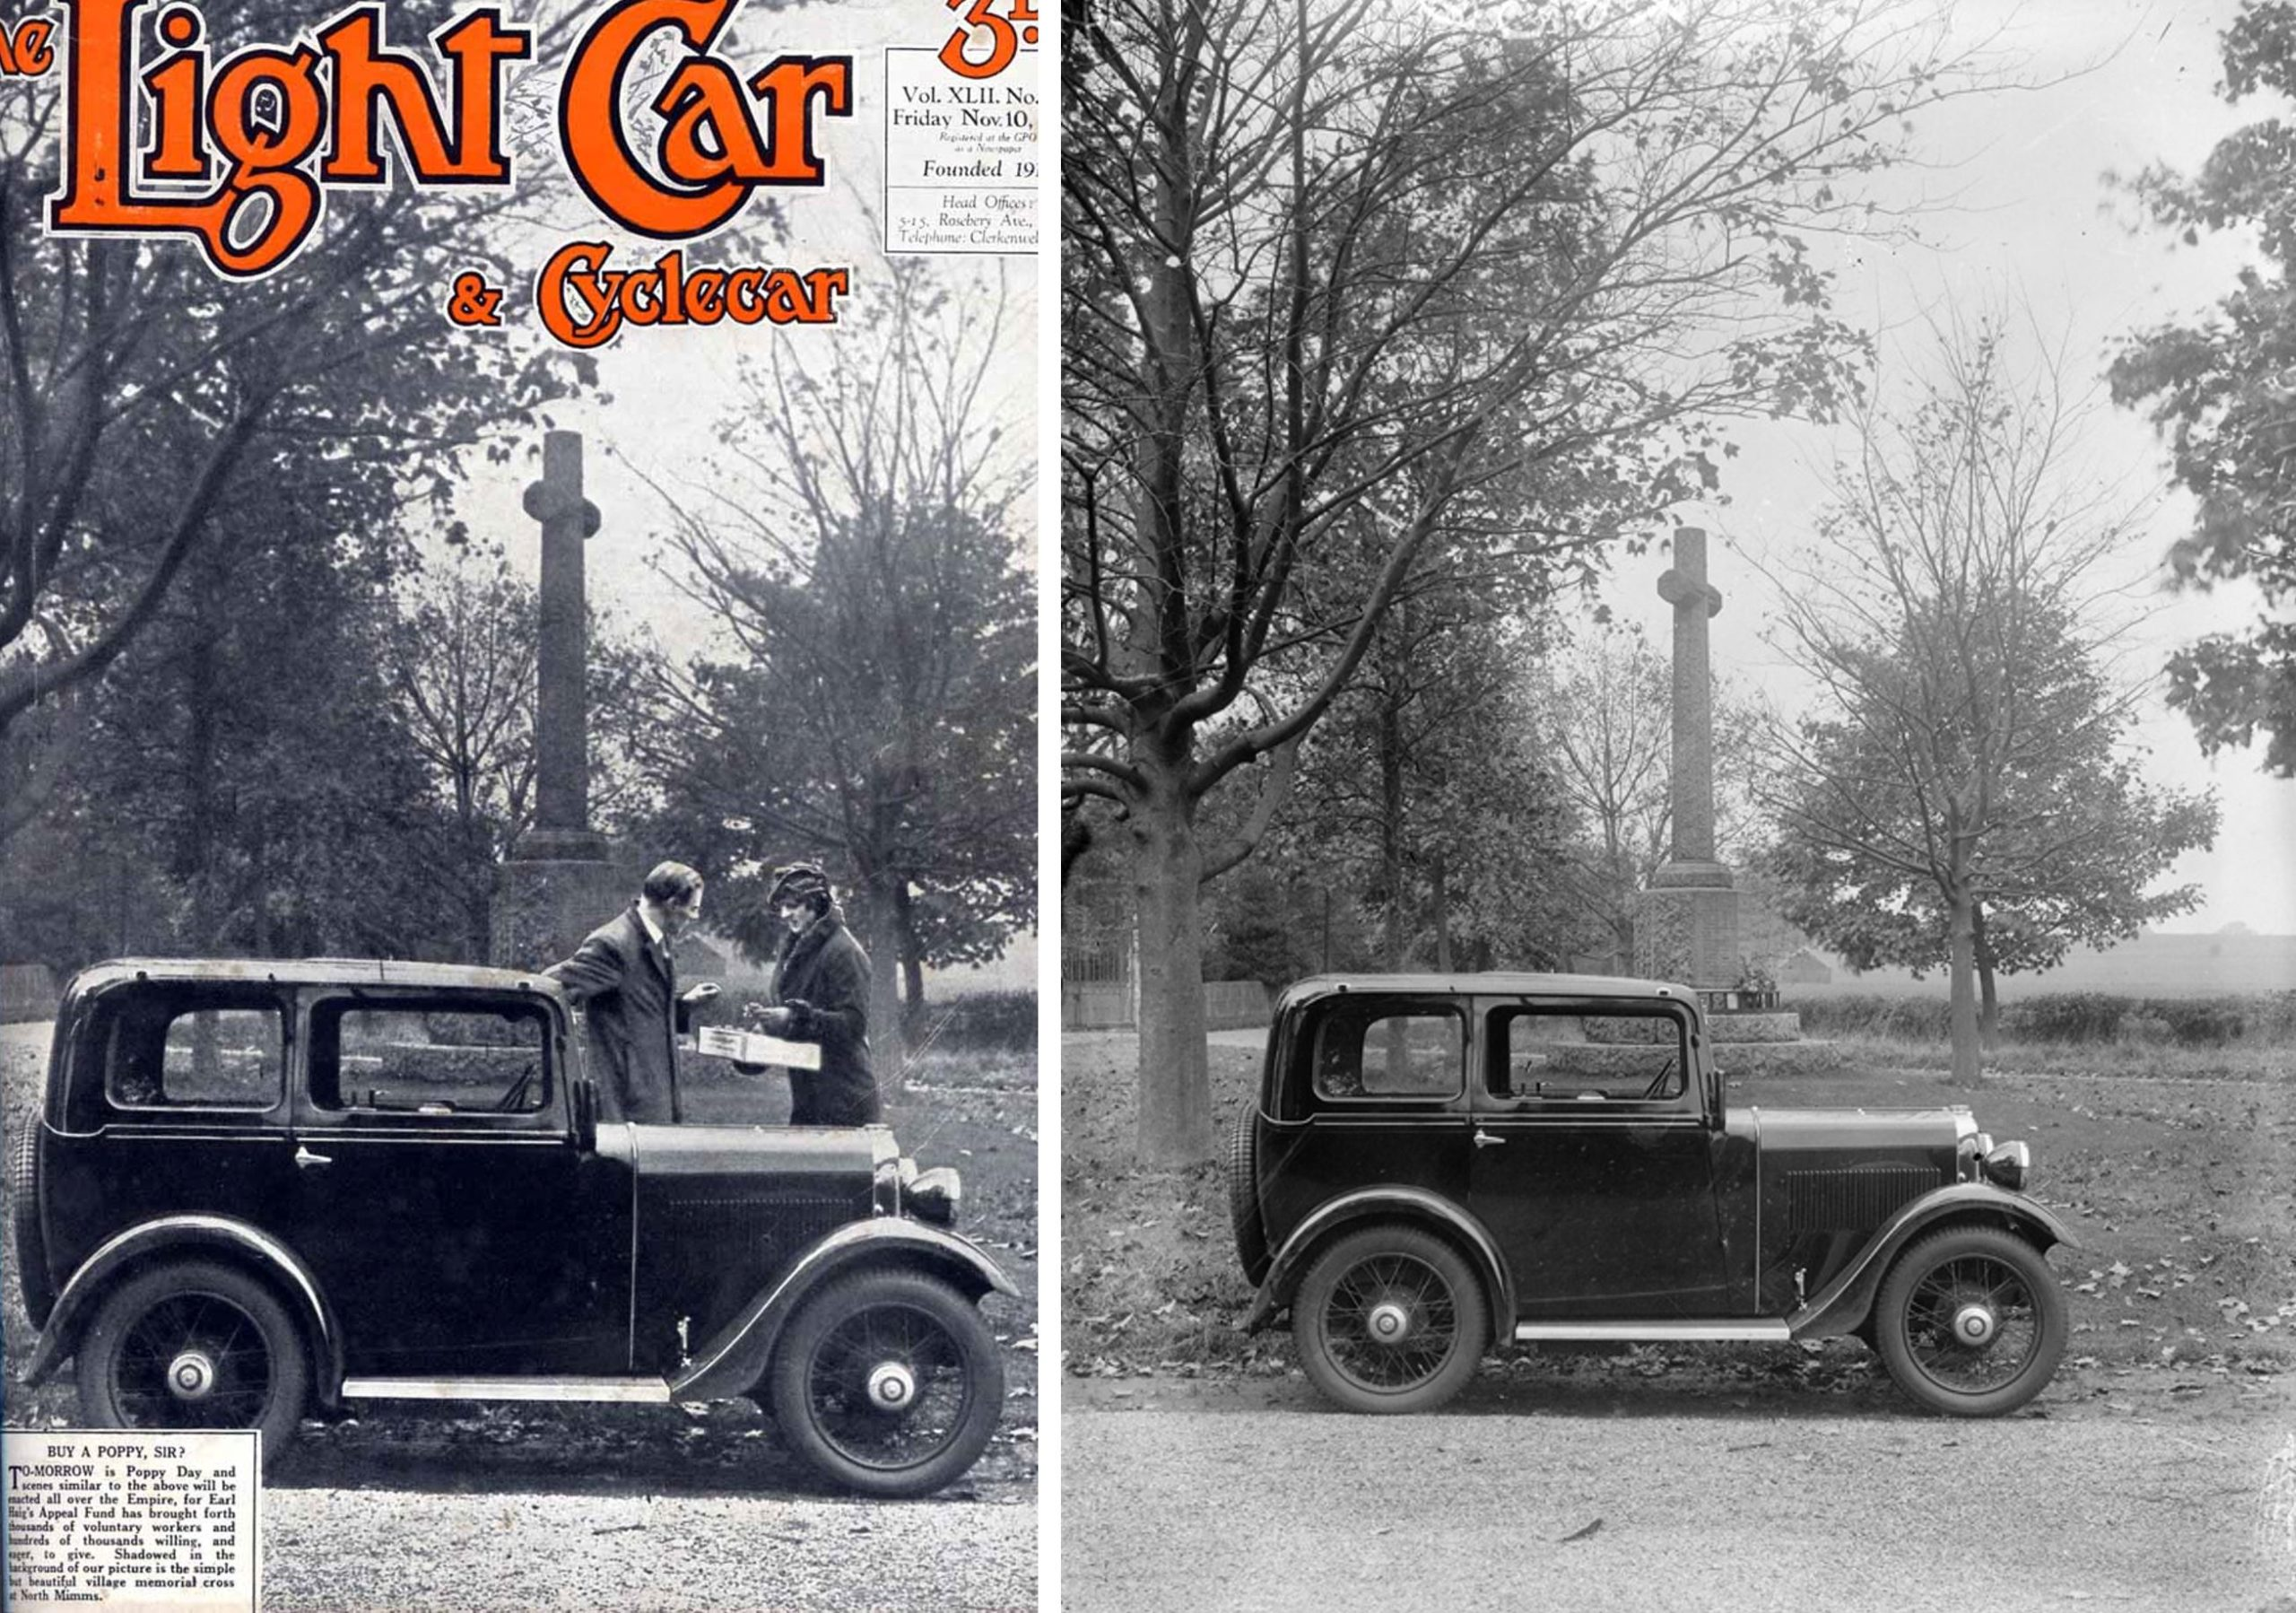 November 1933 Light Car cover & Temple Press plate image of 1934 Minor Saloon Rememberance Day